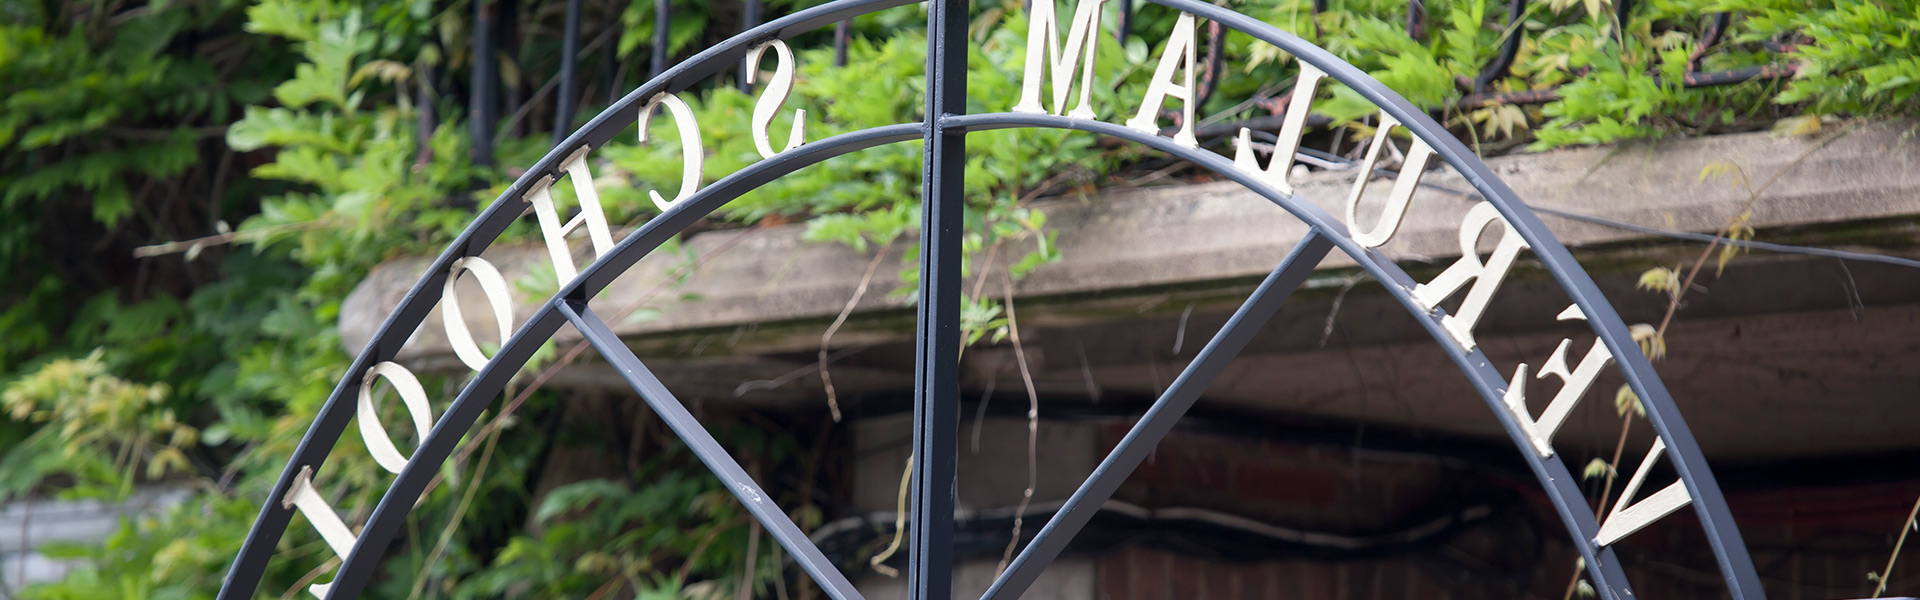 the words 'verulam school' in wrought iron above school gates.